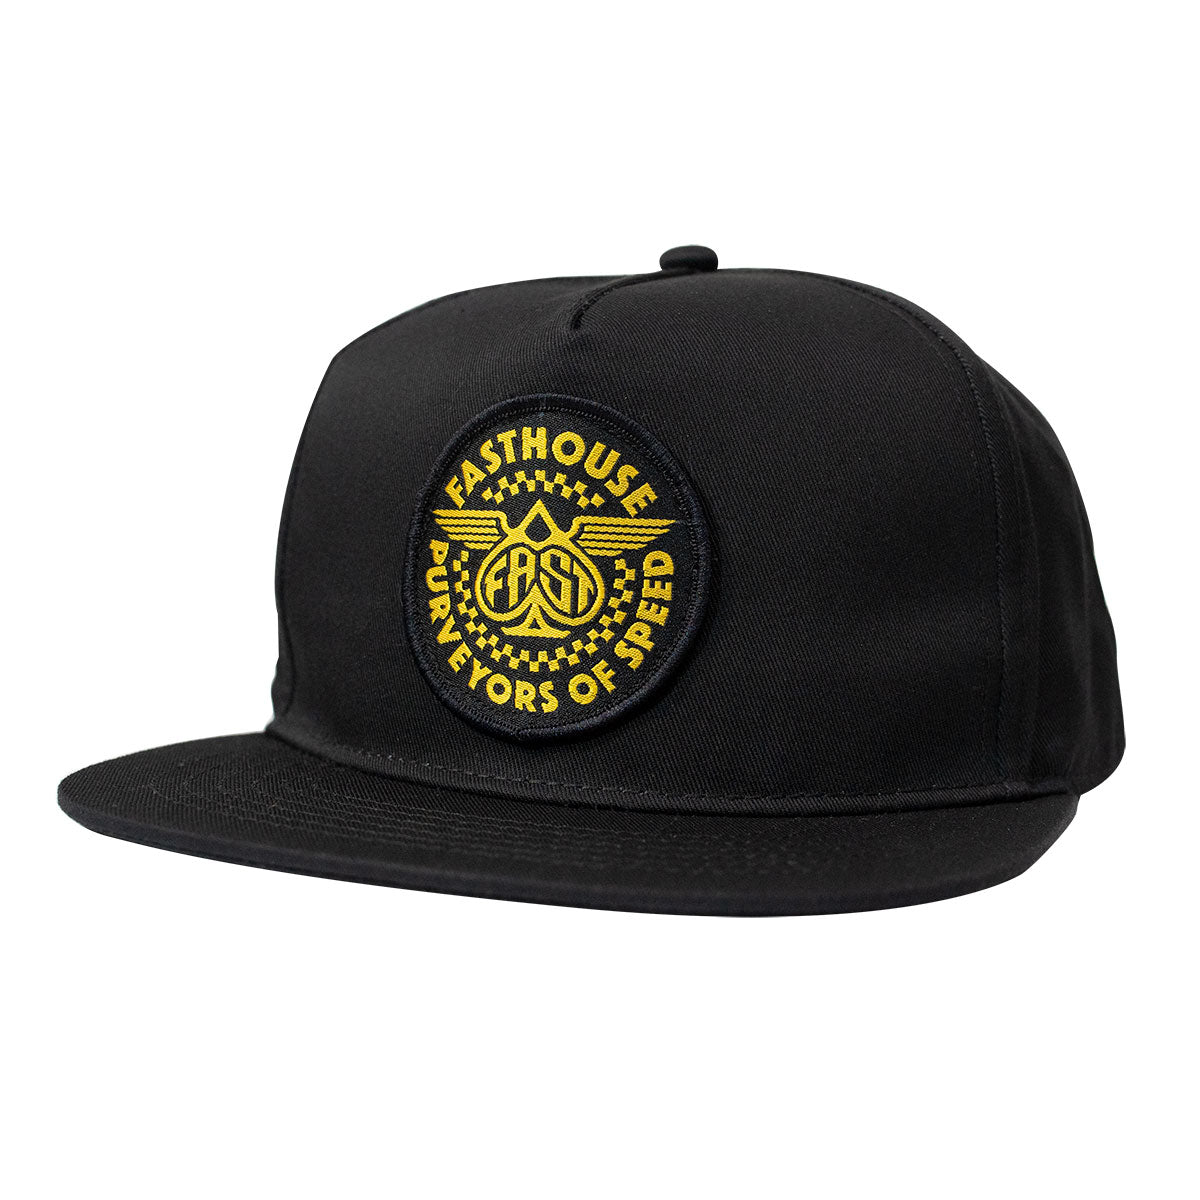 Fasthouse Maverick Hat - Black